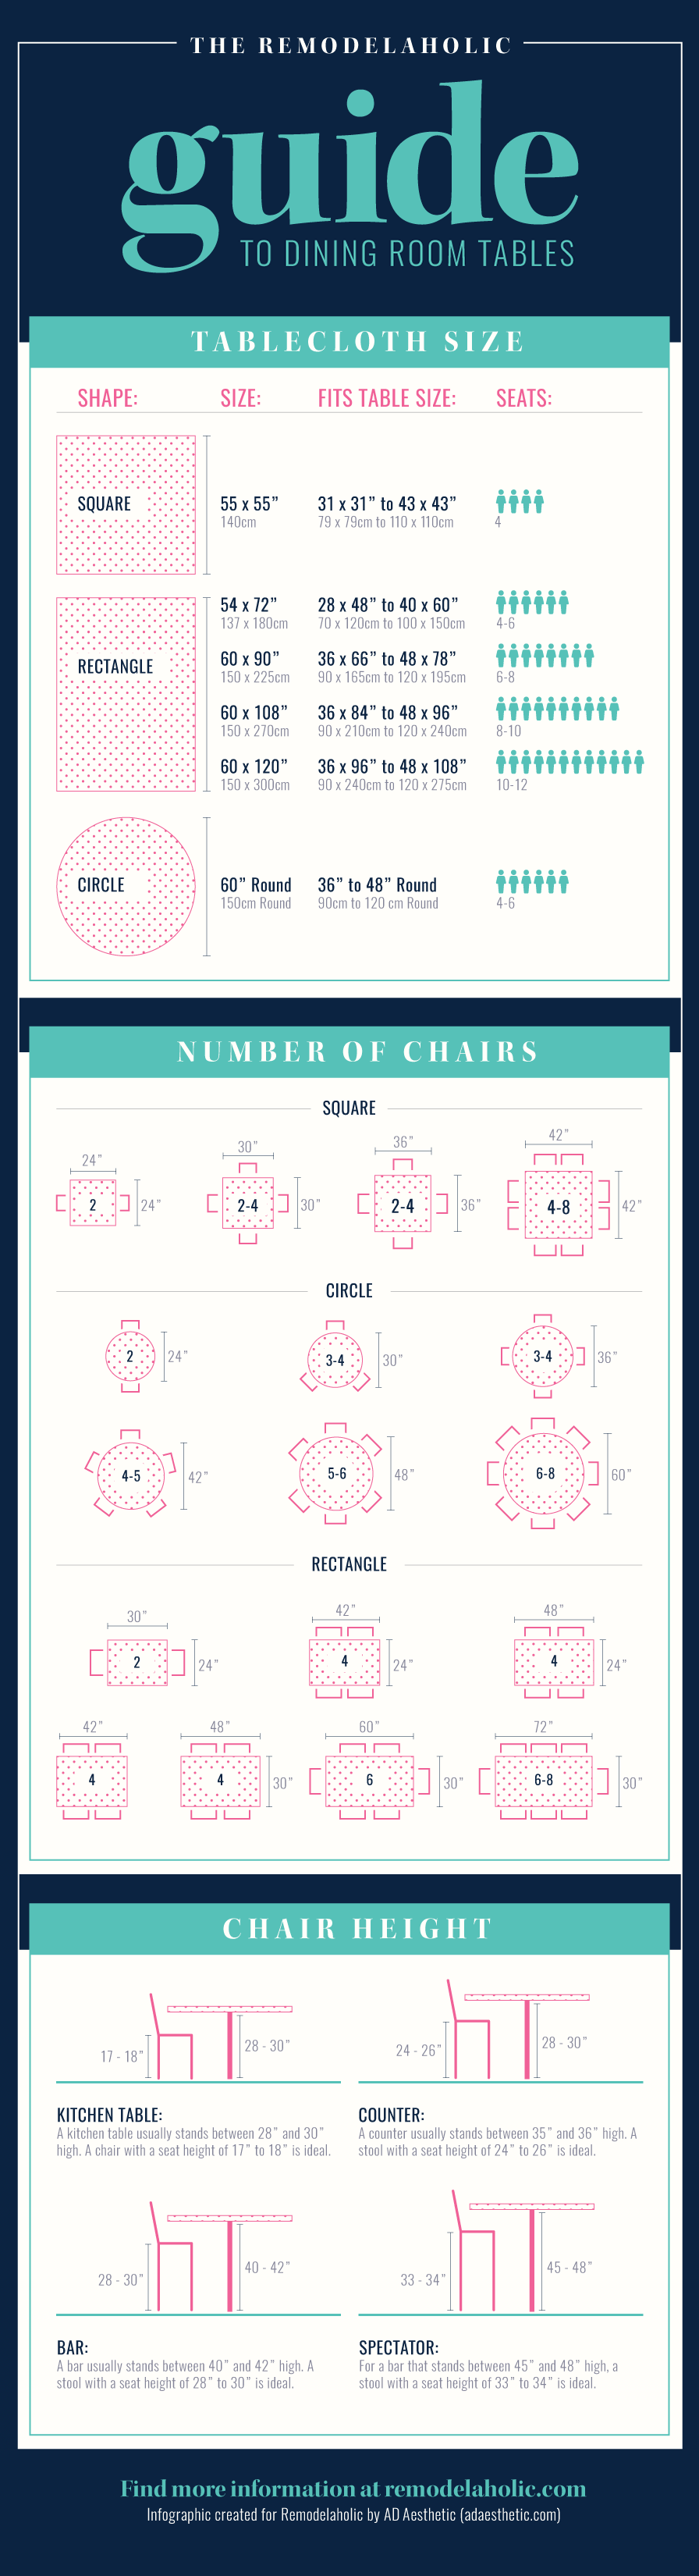 Remodelaholic The Remodelaholic Guide To Dining Table